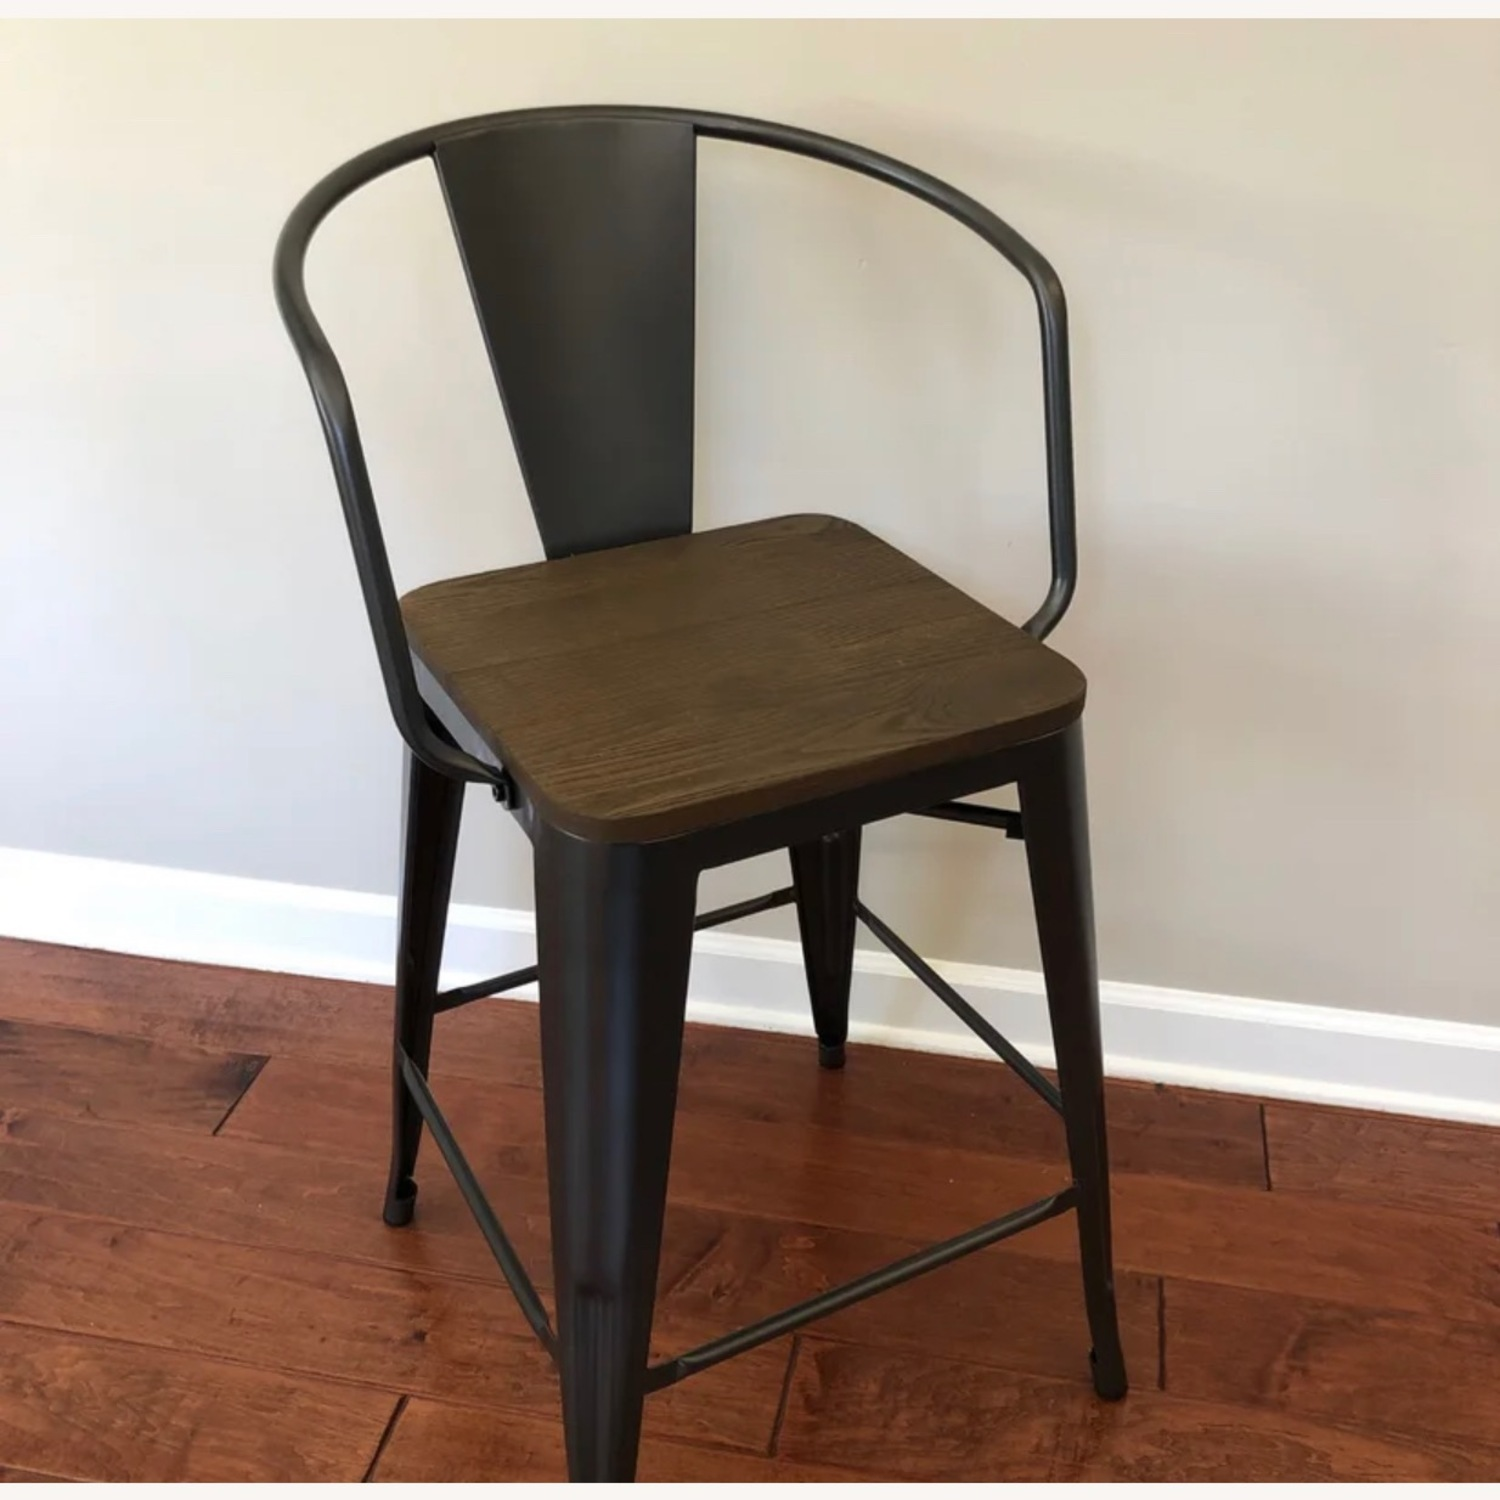 Wayfair Set of two Industrial Counter Stools - image-1